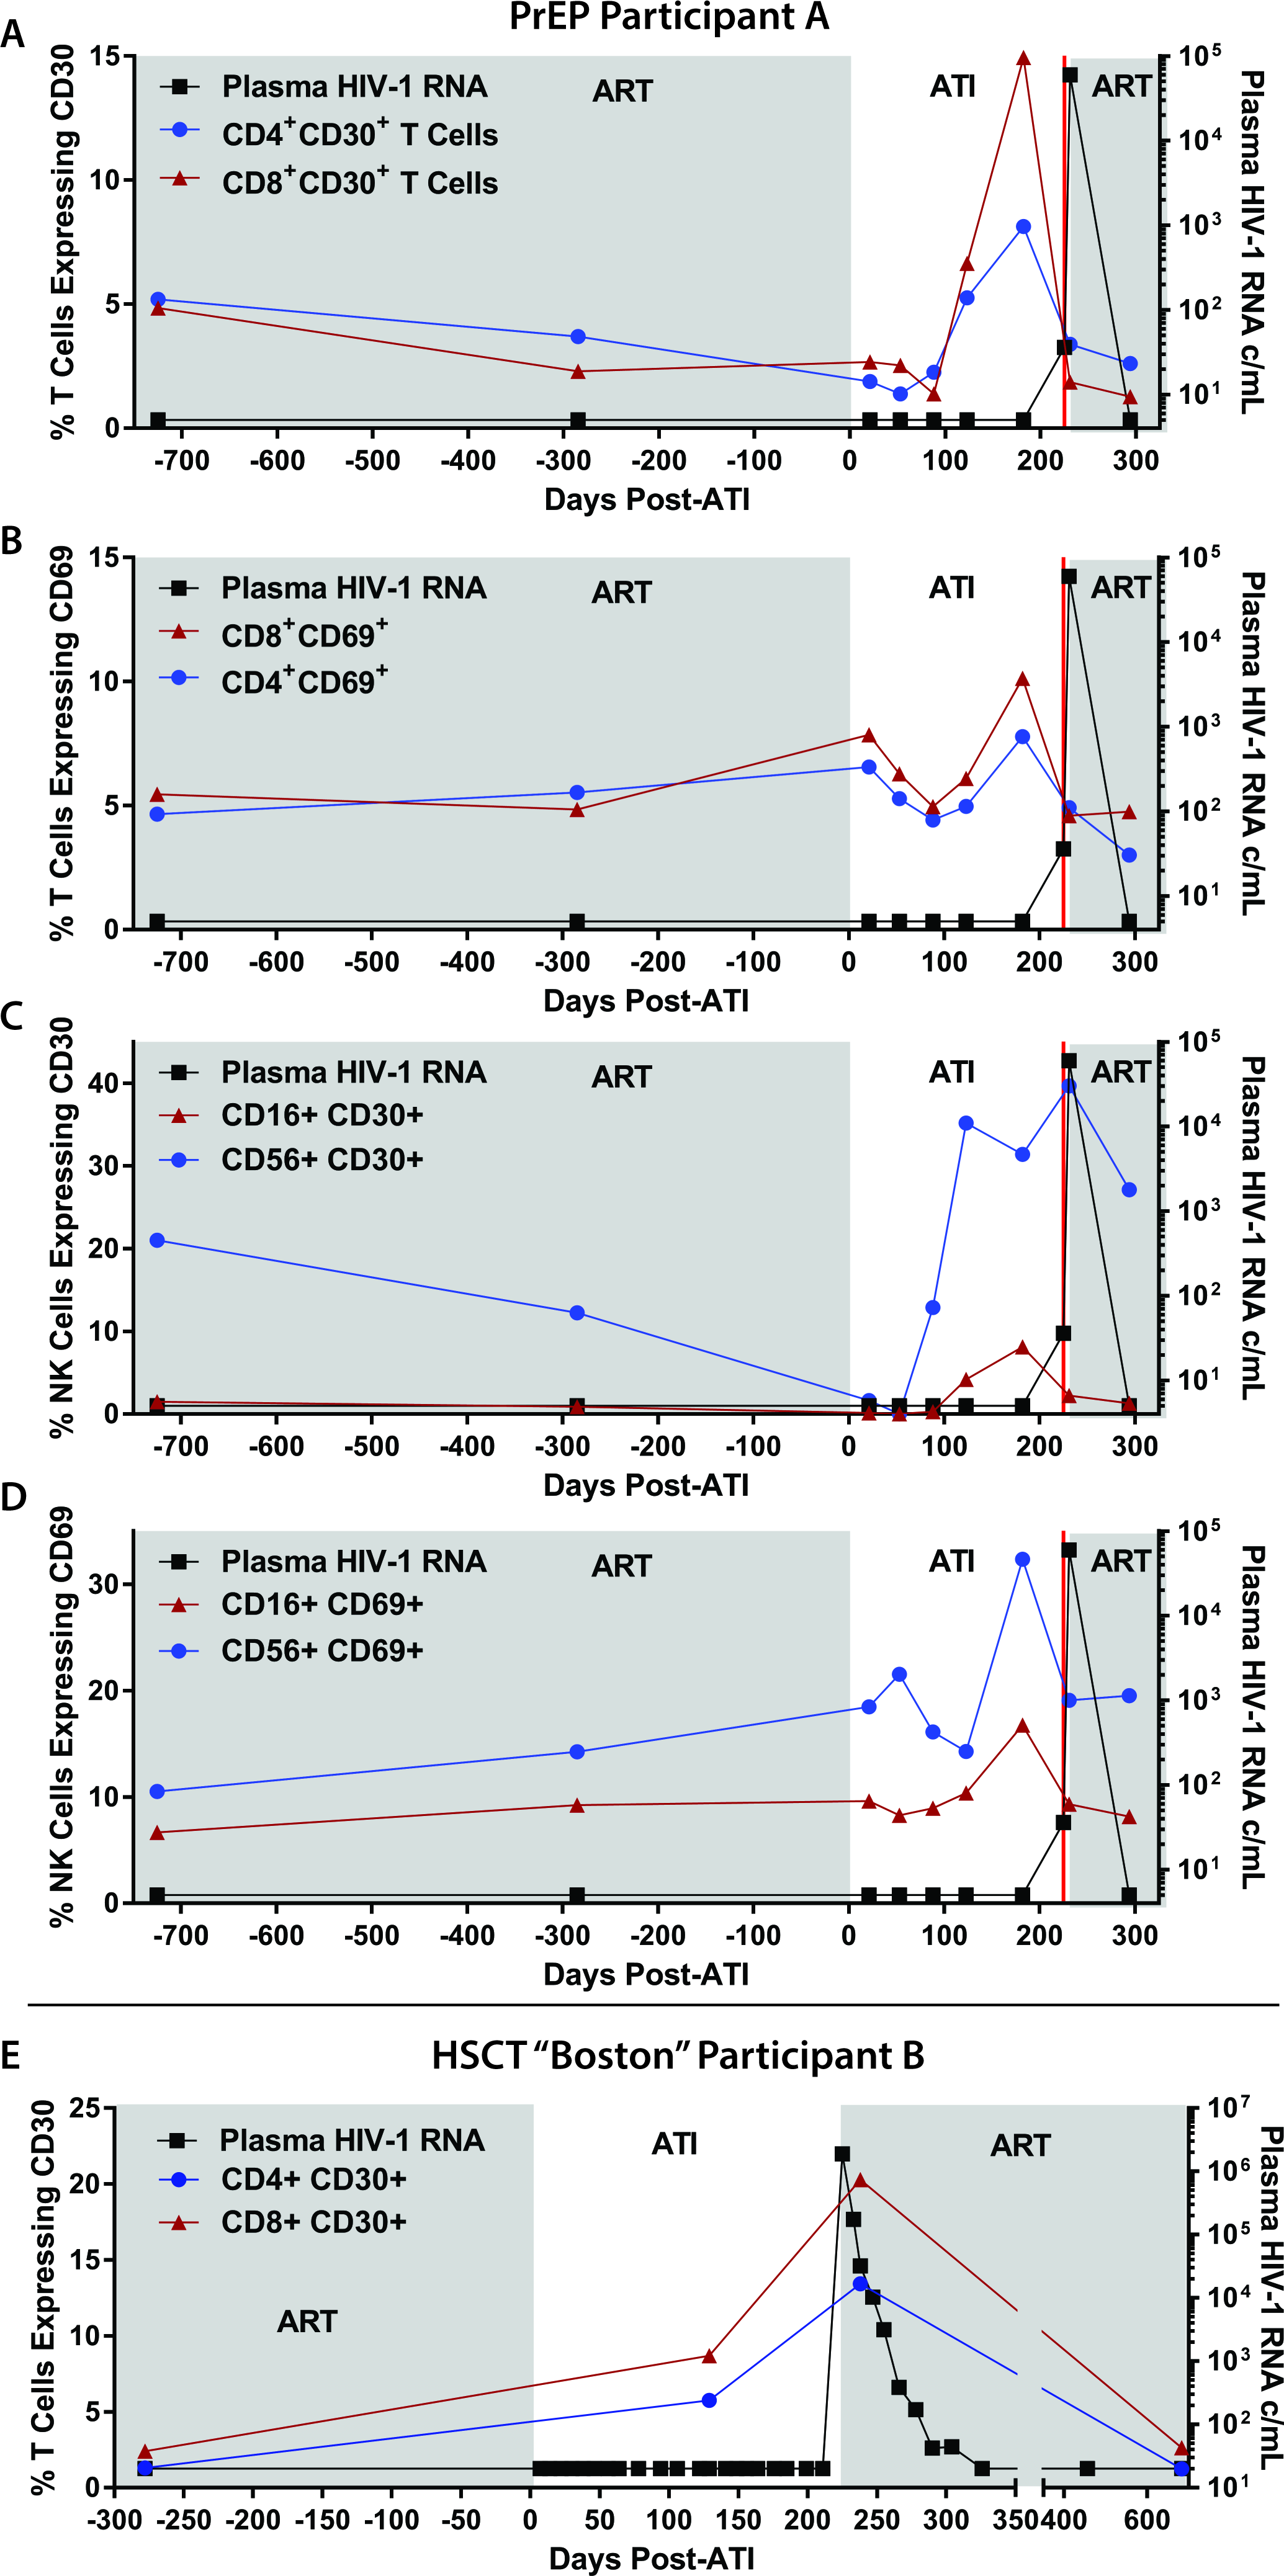 Changes in lymphocyte surface markers following ATI in PrEP Participant A and HSCT Participant B.